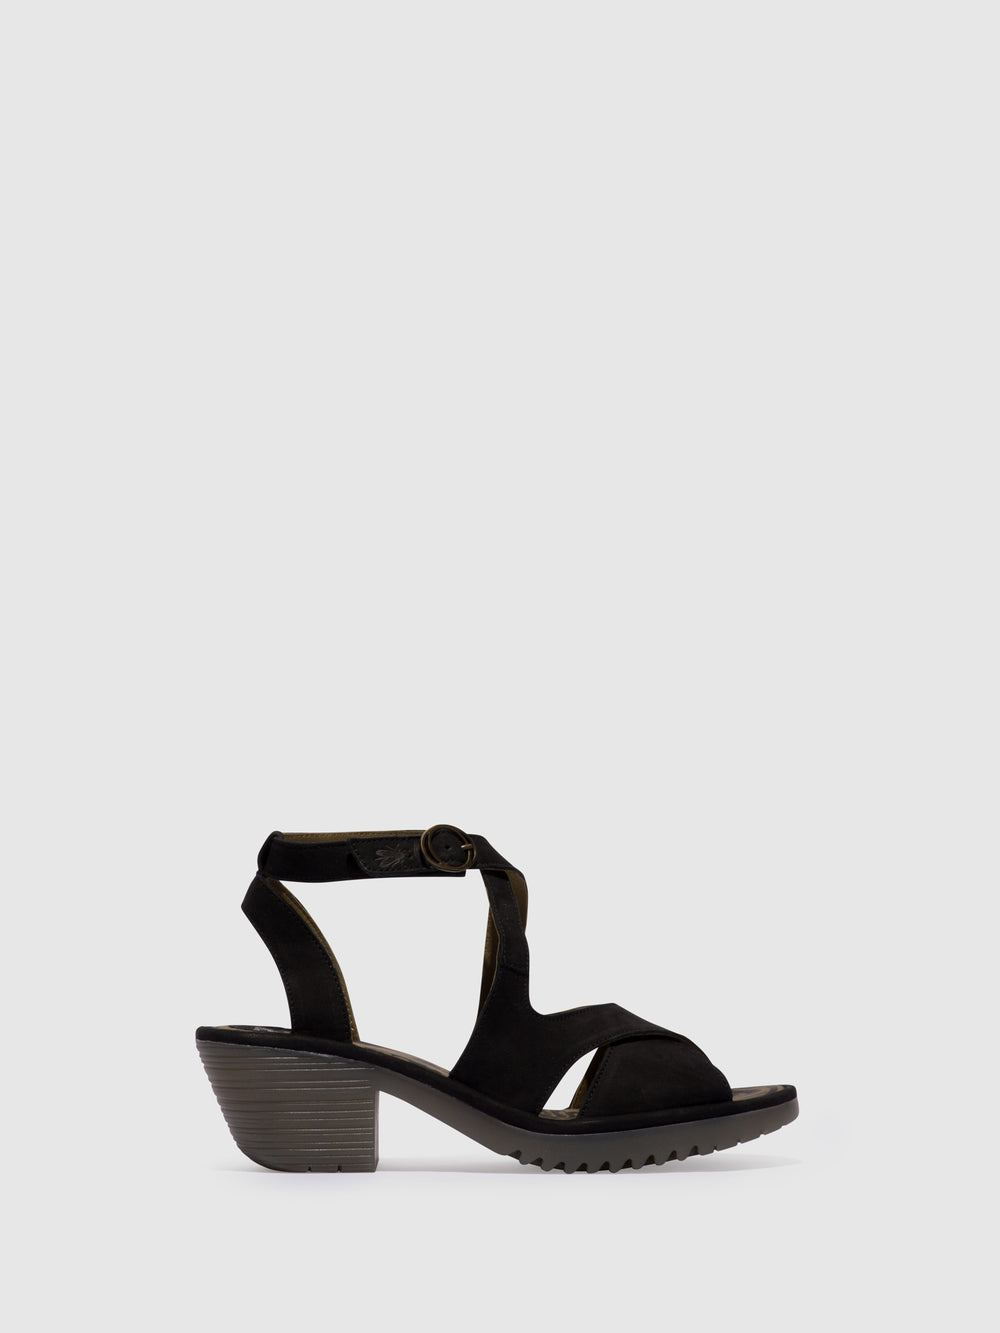 Ankle Strap Sandals WAFE152FLY BLACK (CRISTAL SOLE)